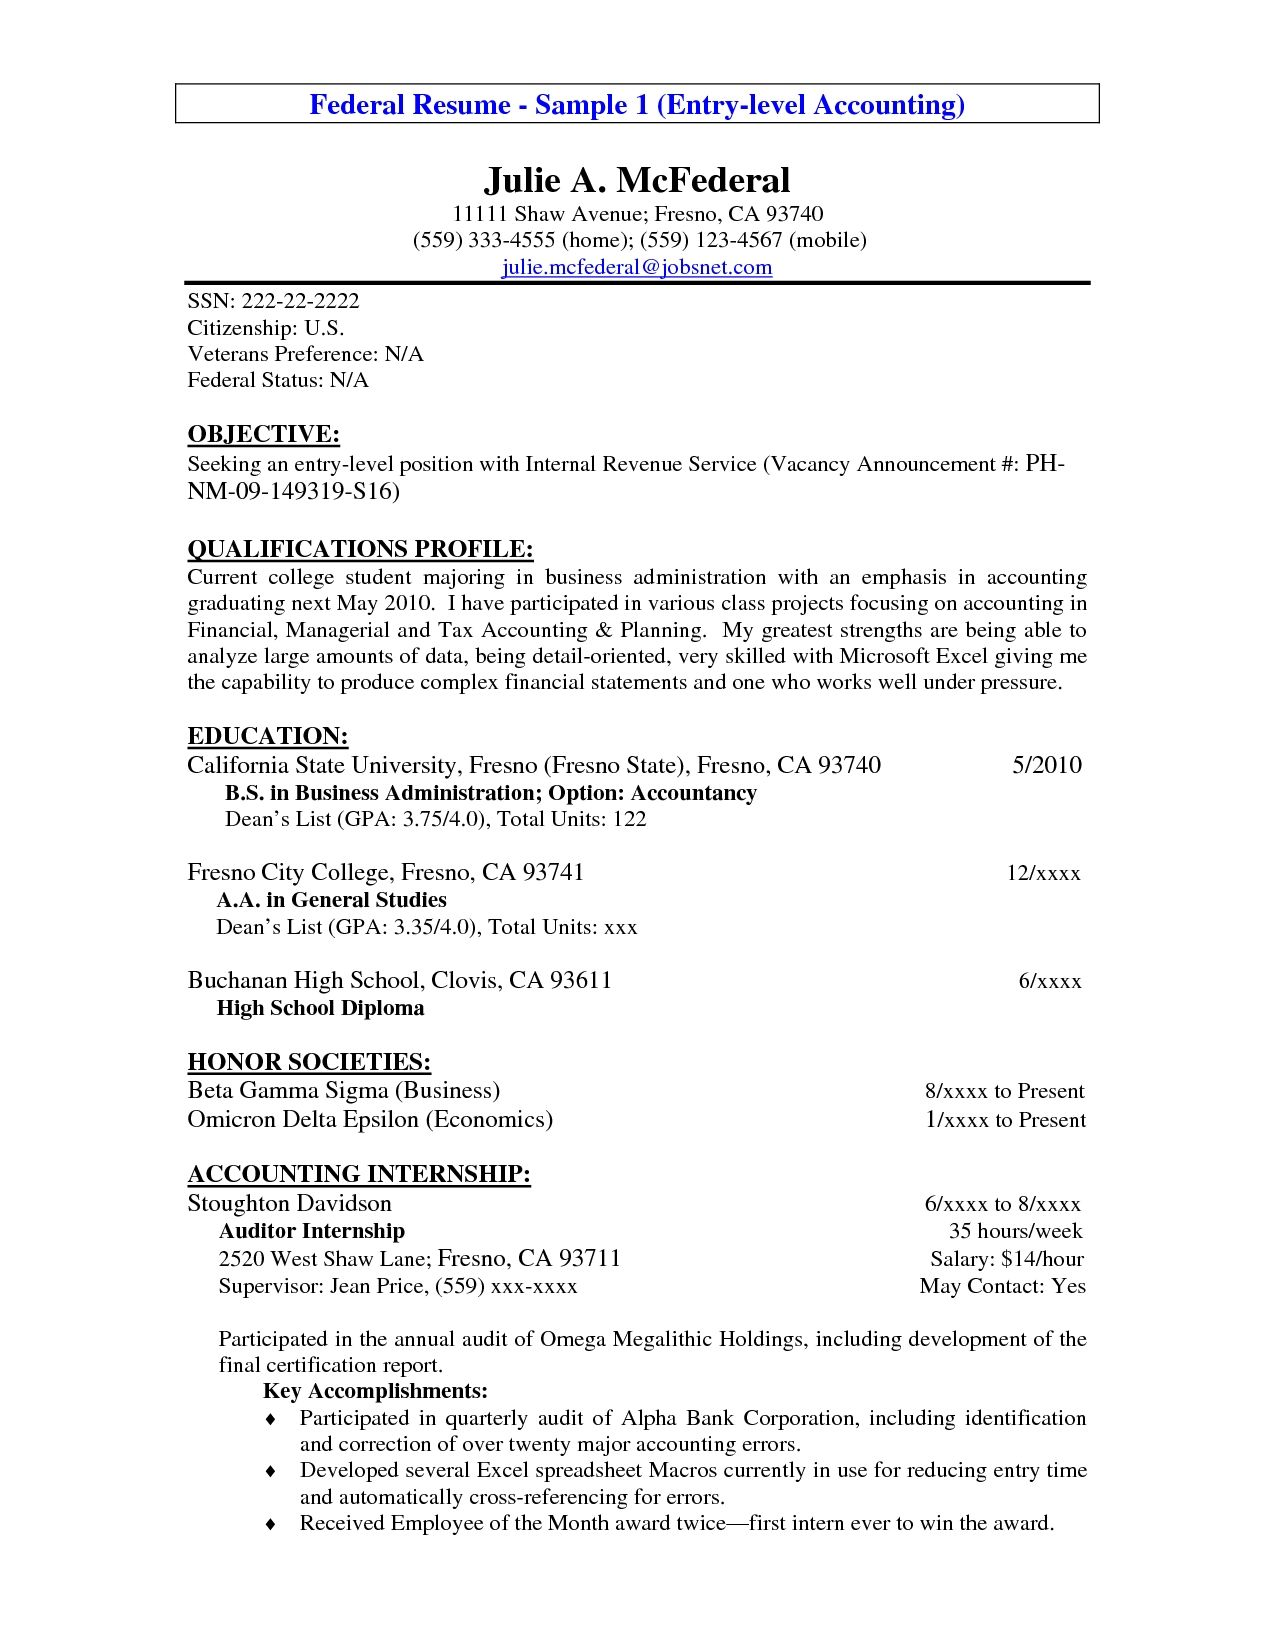 Accountant Resume Entry Level Resume Example Entry Level Accounting Resume Sample